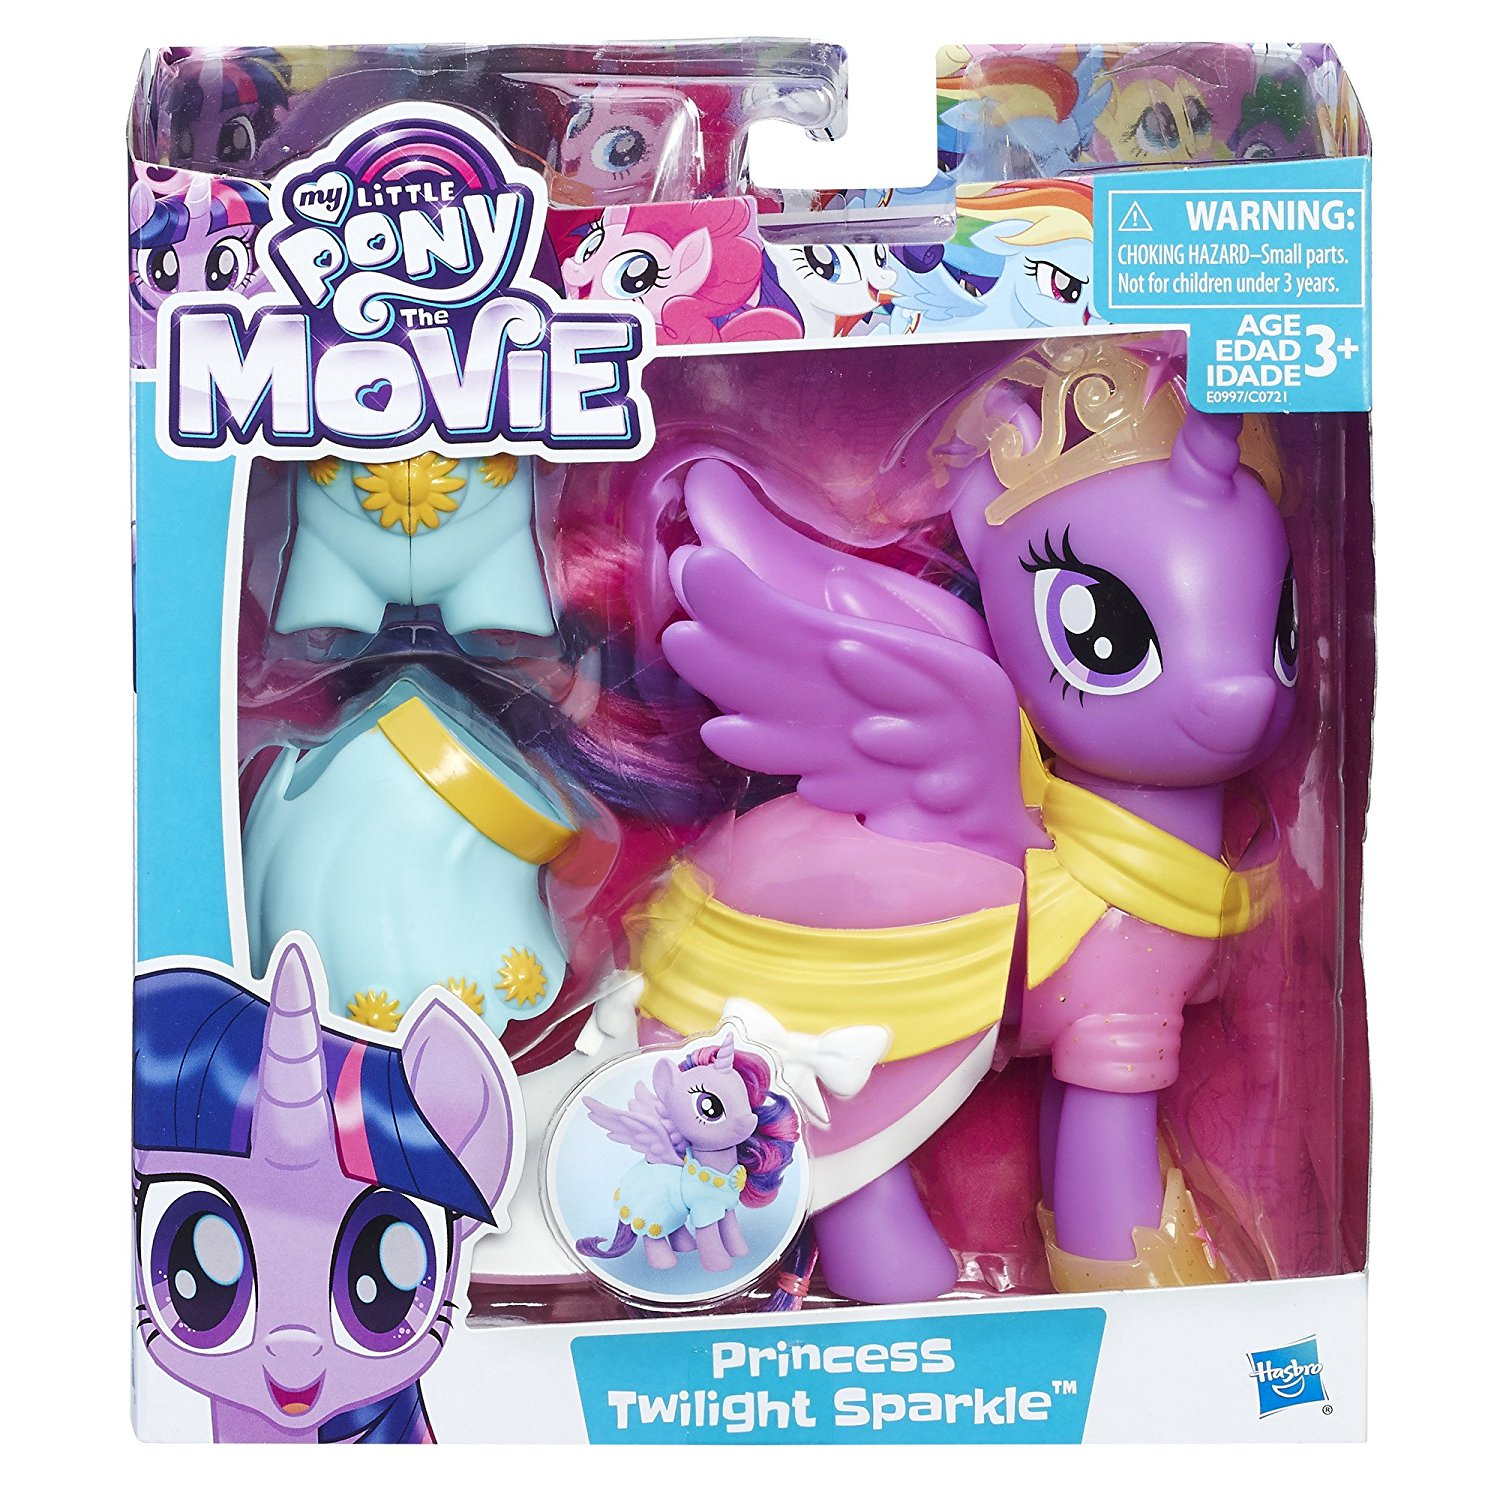 New Mlp The Movie Fashion Styles On Amazon Baby Hippogriff Mlp Merch